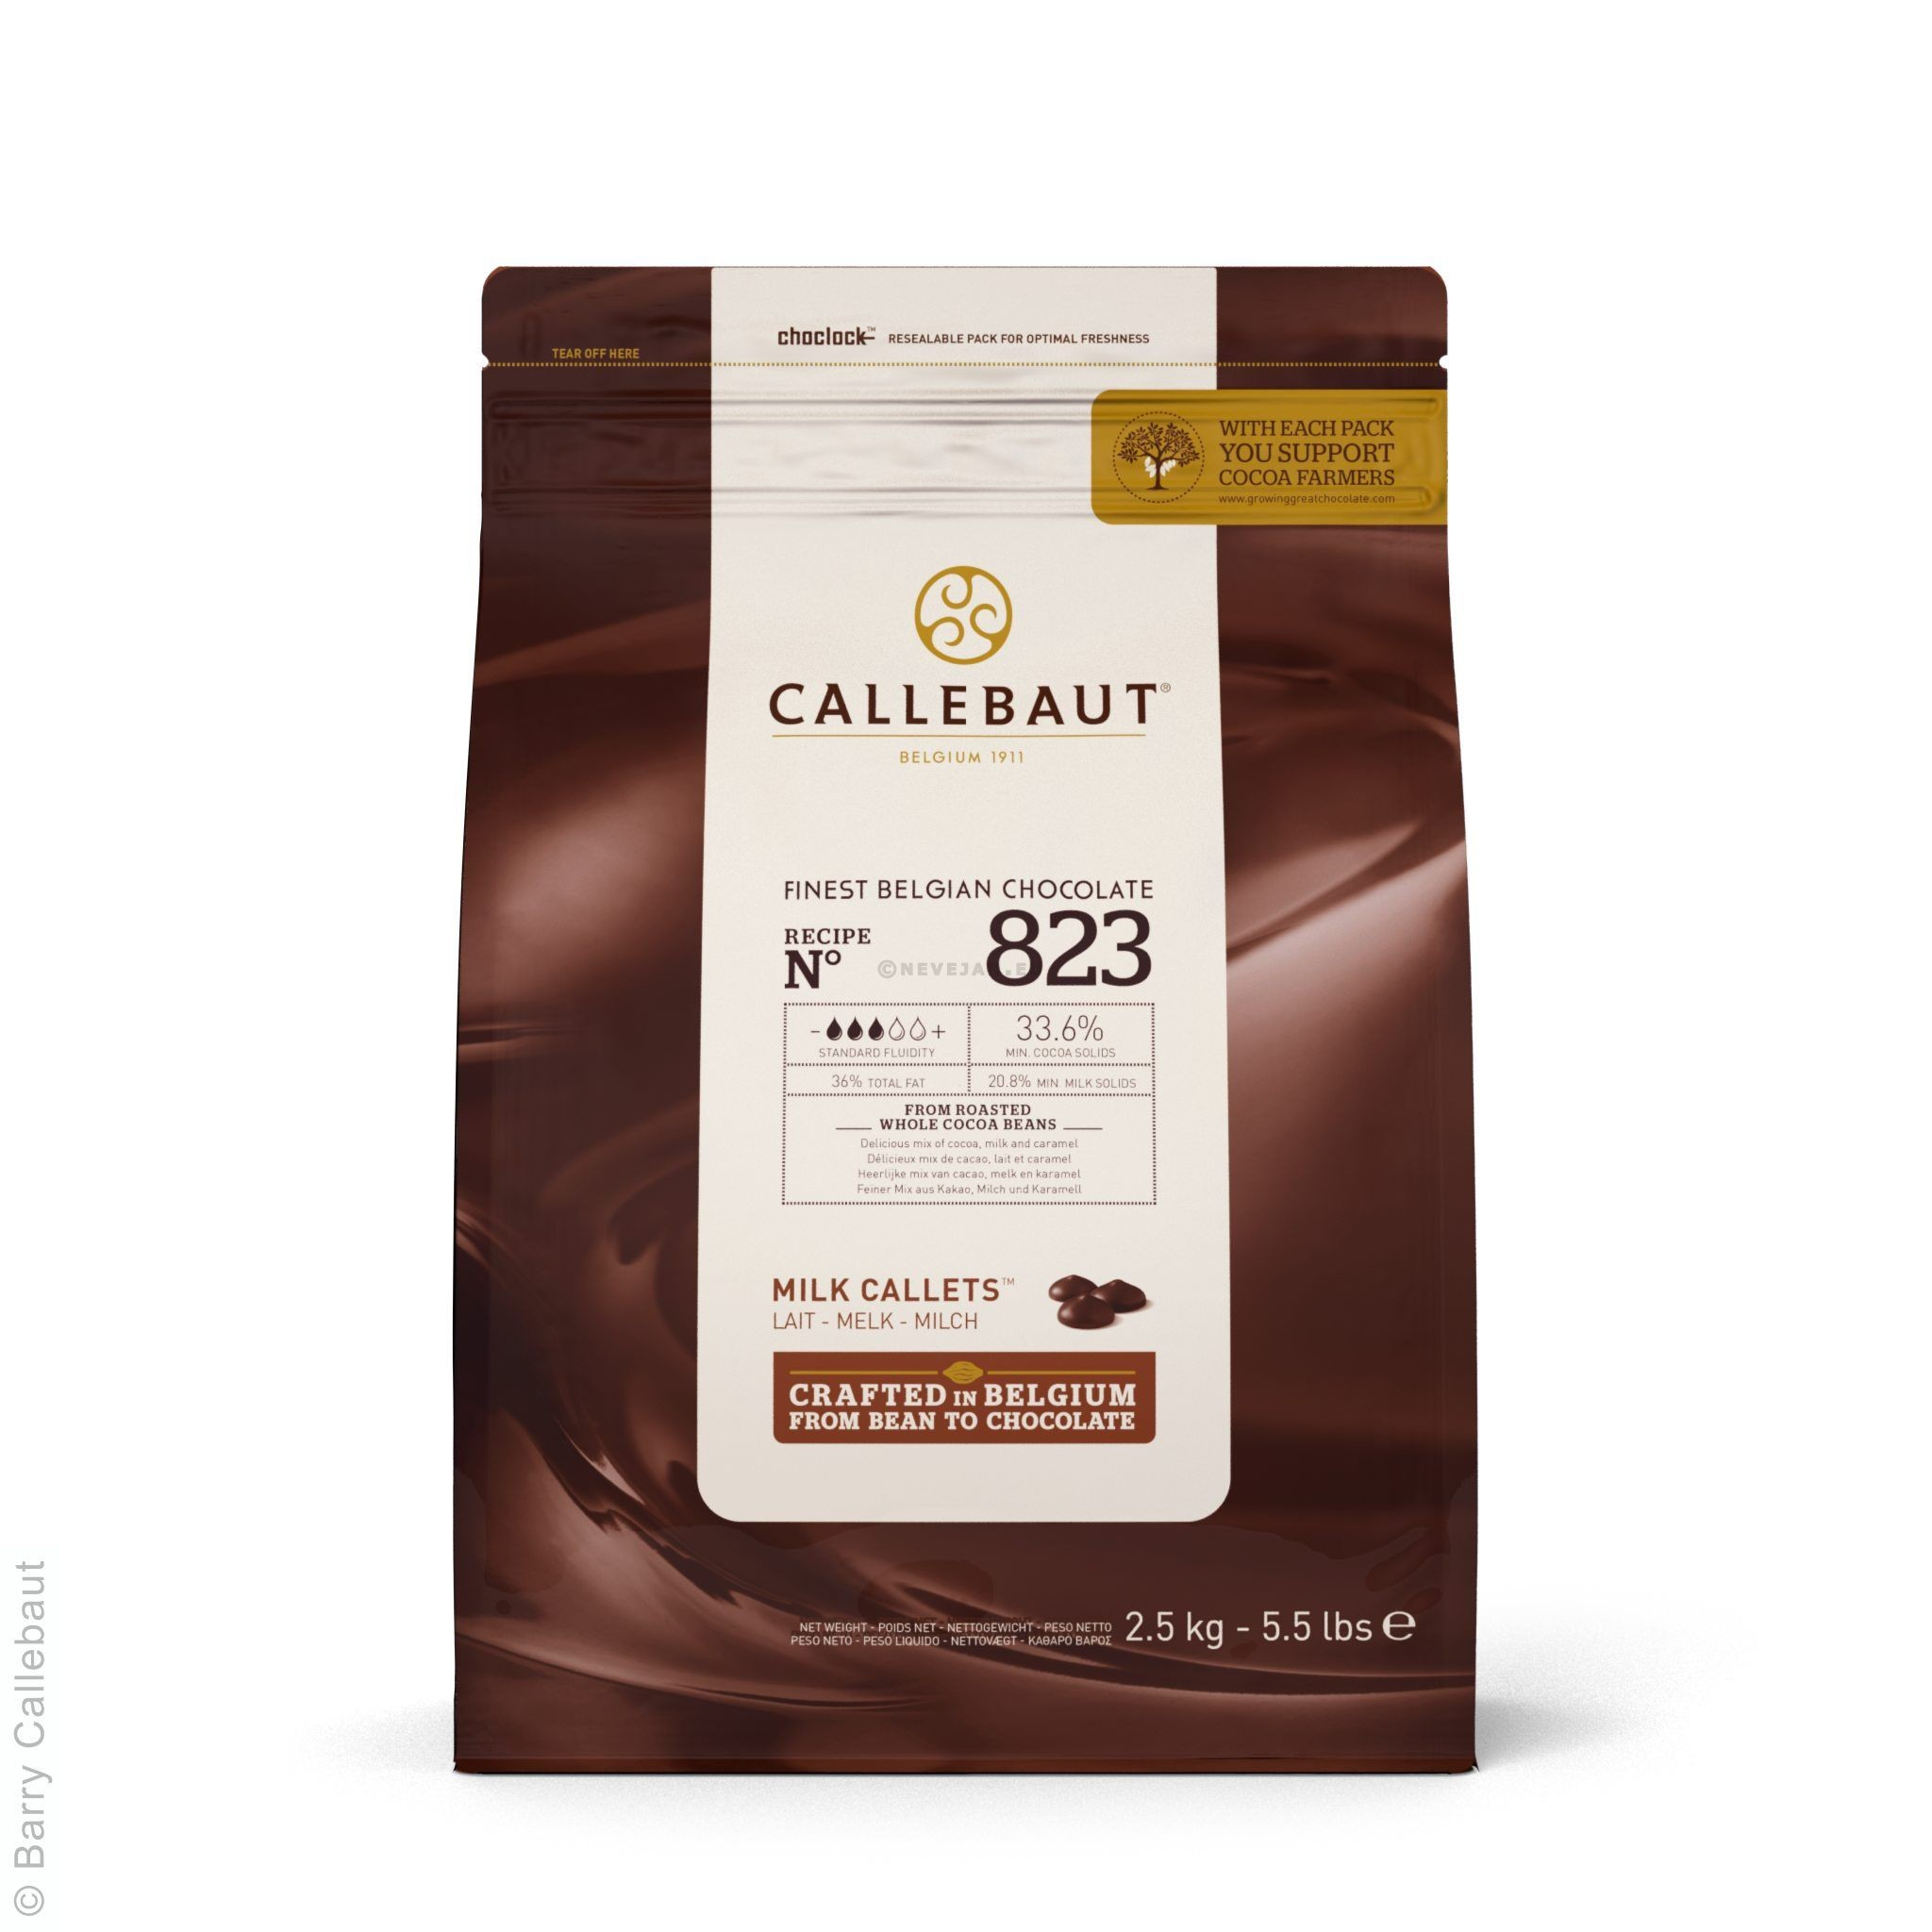 Barry Callebaut Chocolate callets C823 milk 2.5kg 5.5lbs